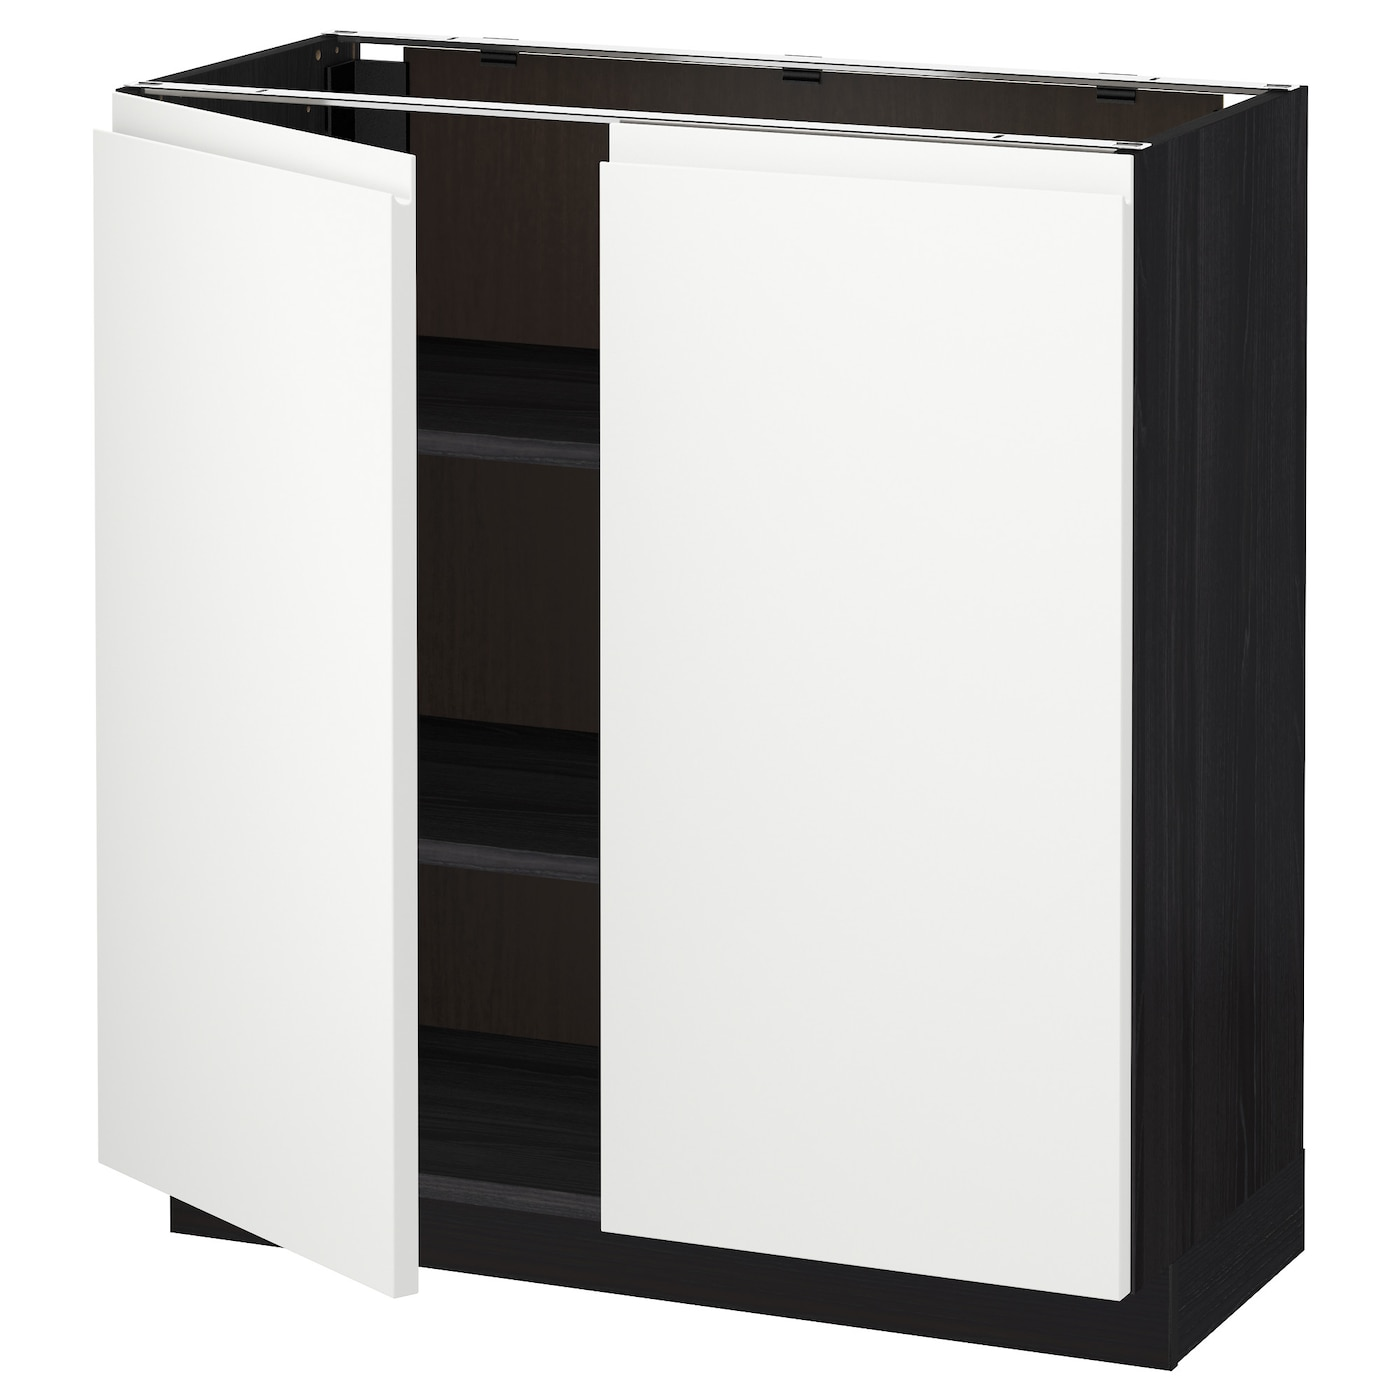 Metod base cabinet with shelves 2 doors black voxtorp for White cabinets with black doors